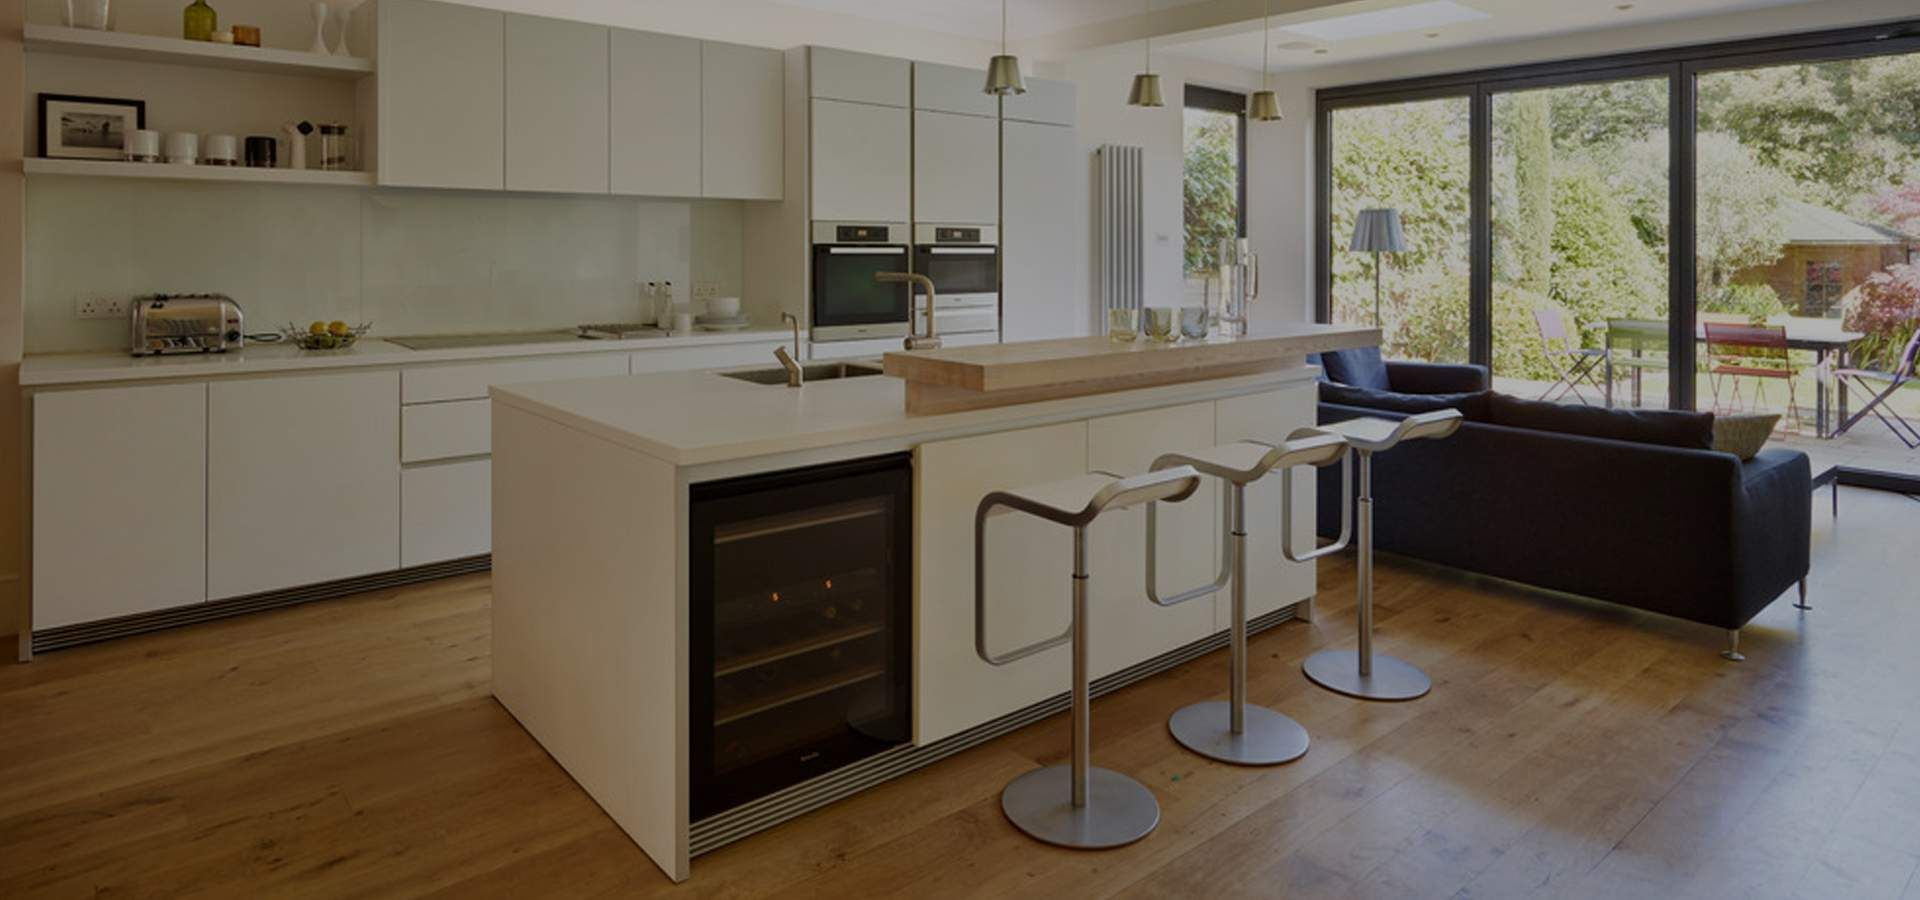 Modern Kitchen Design With Price Internationally Designed Modular Kitchens In India Browse Parallel